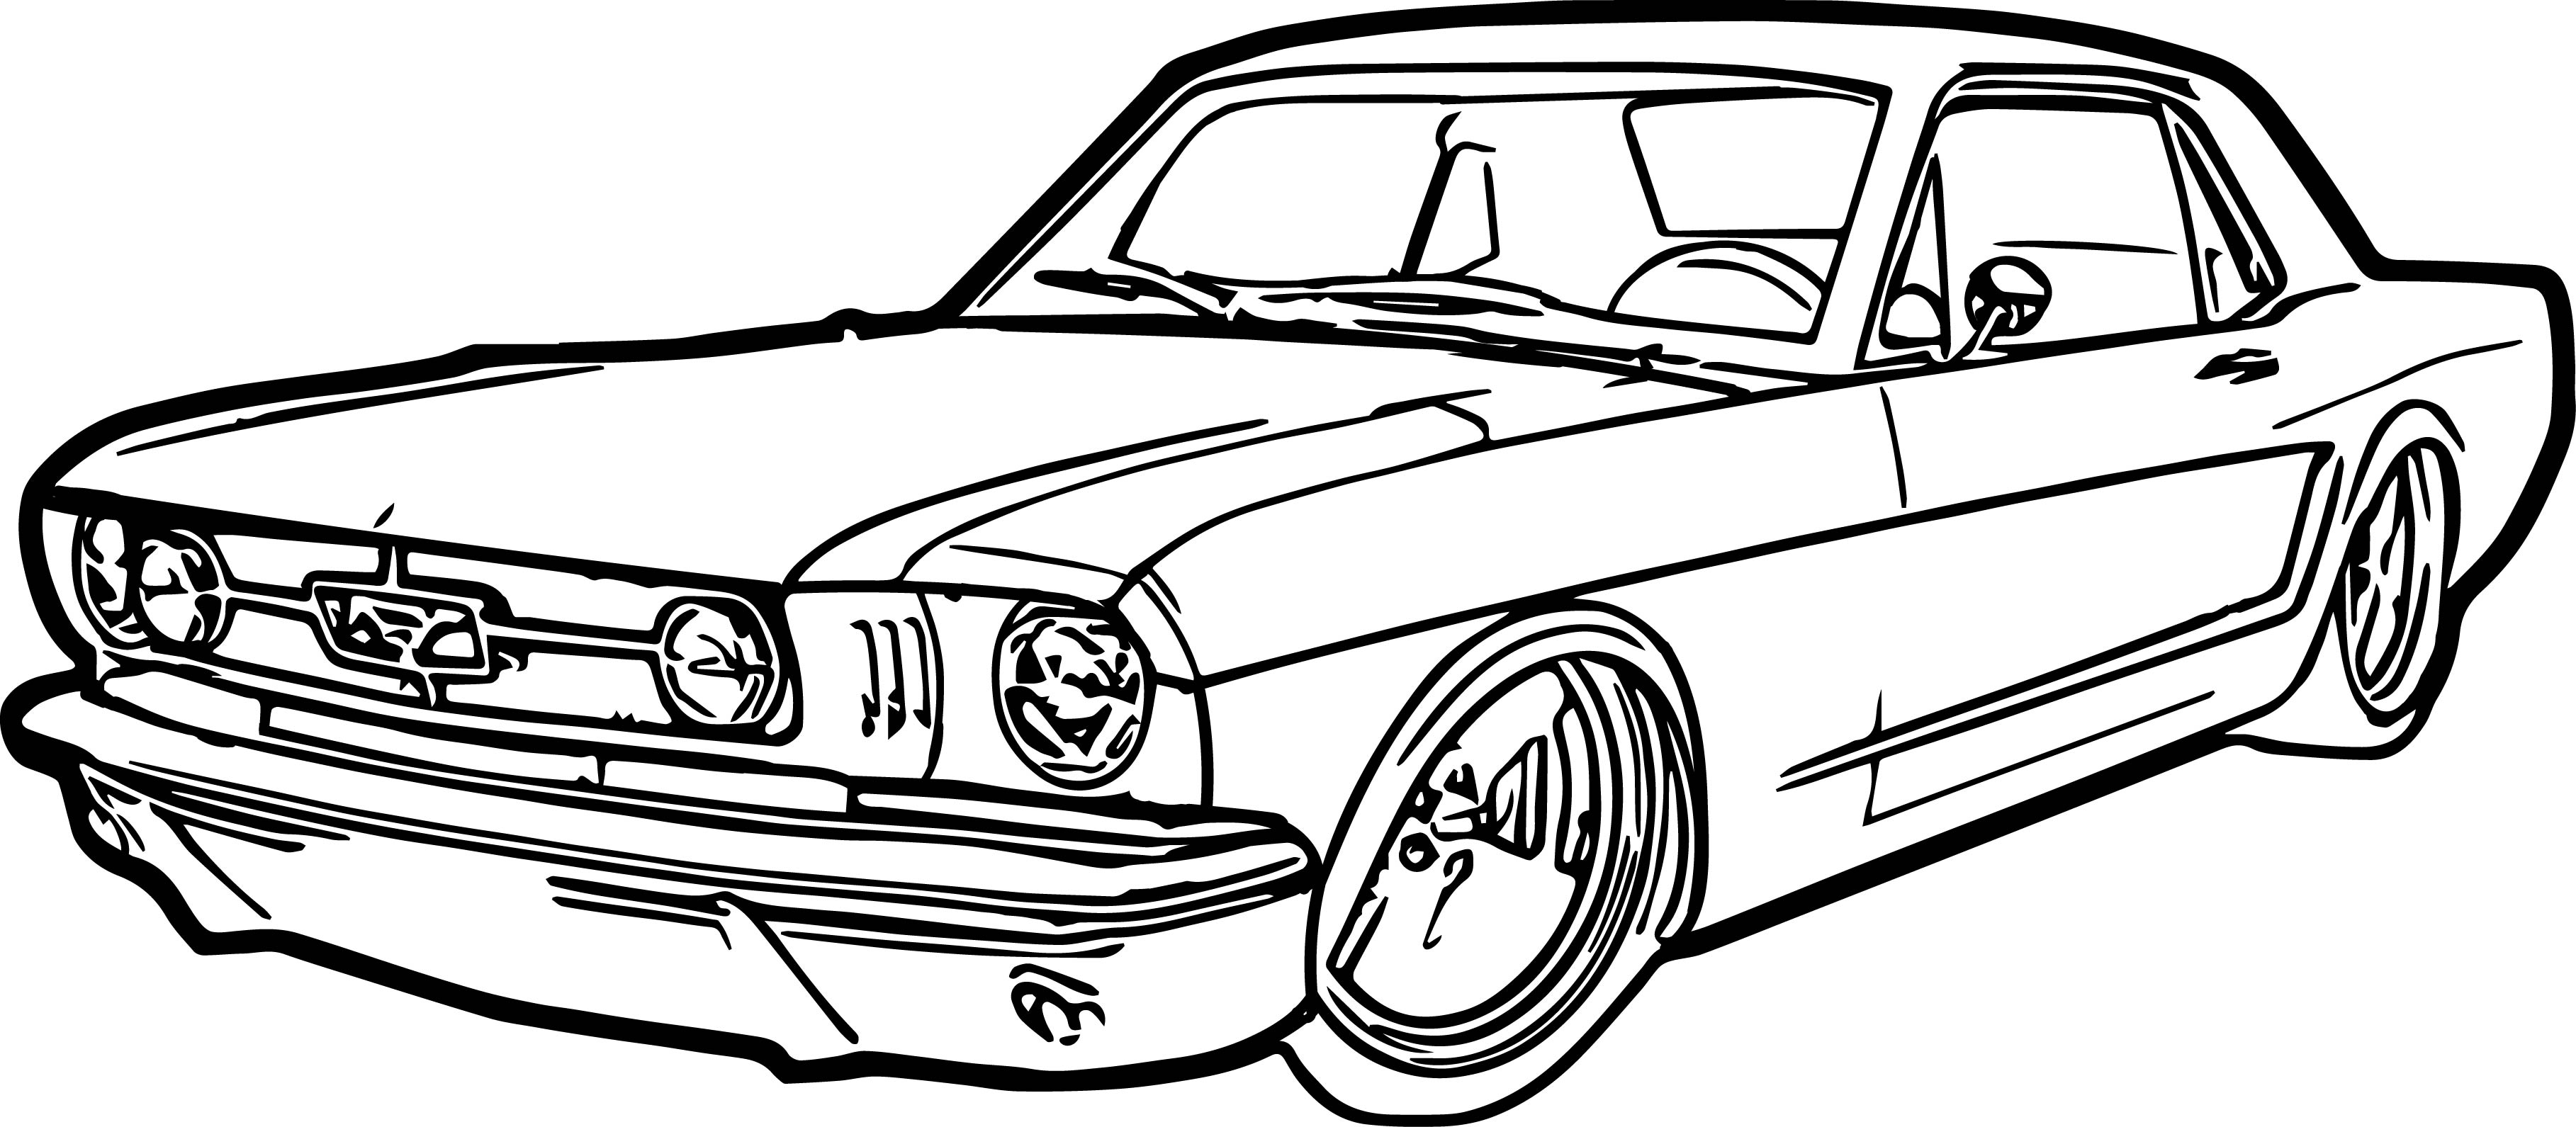 ford mustang gt lineart coloring page. muscle ford mustang new. 1 ...